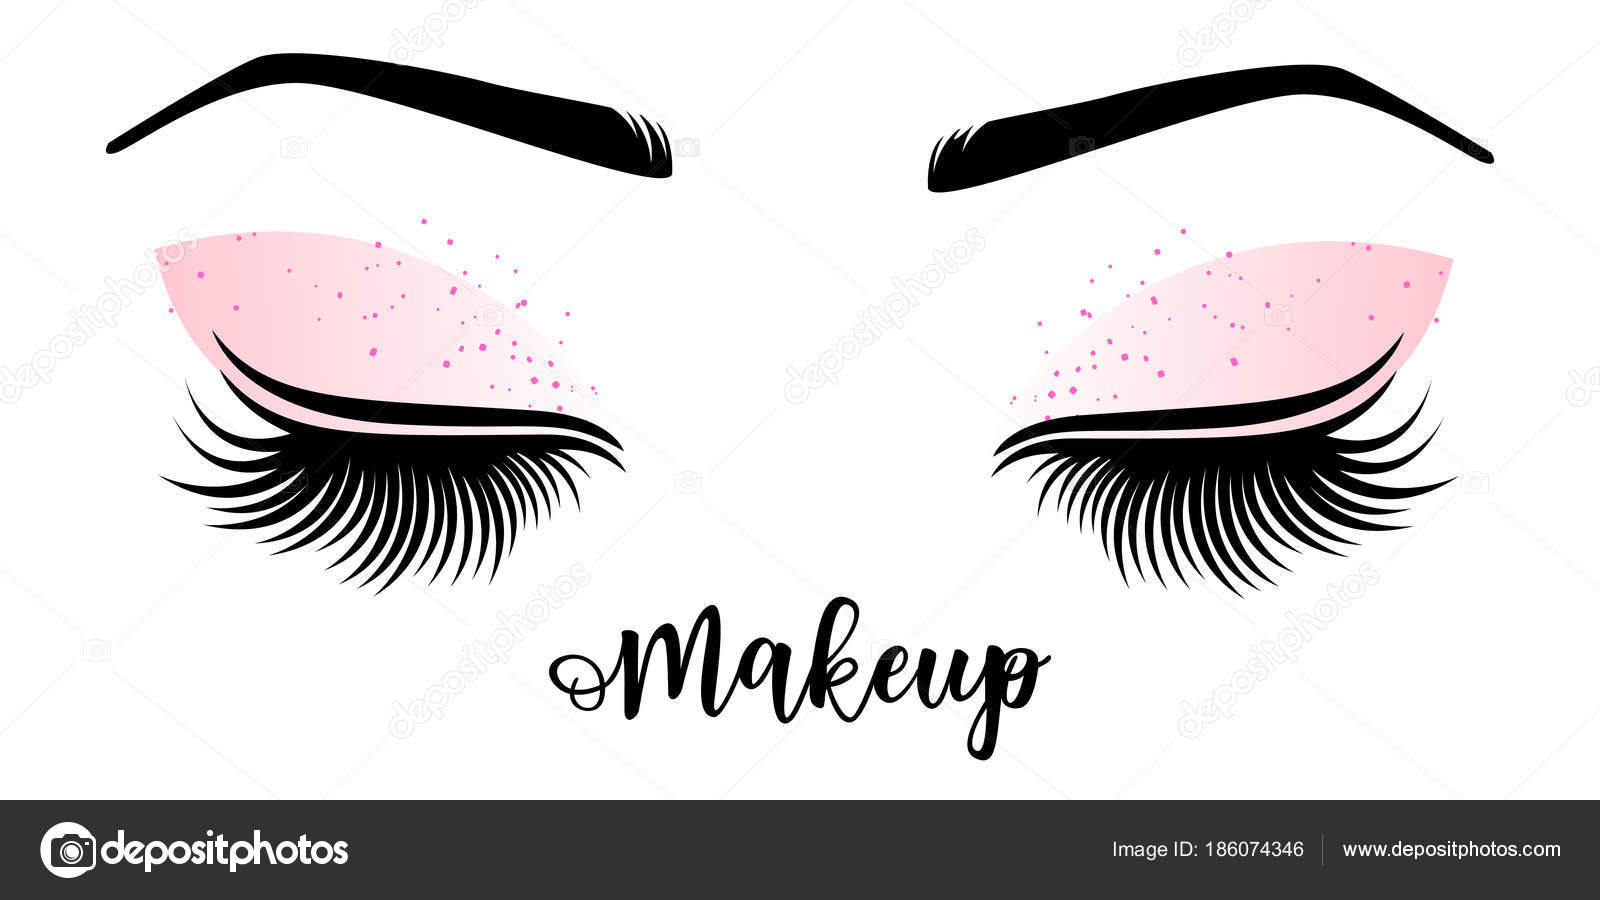 66f53635ca7 Makeup master logo. Vector illustration of lashes and brow. — Stock Vector